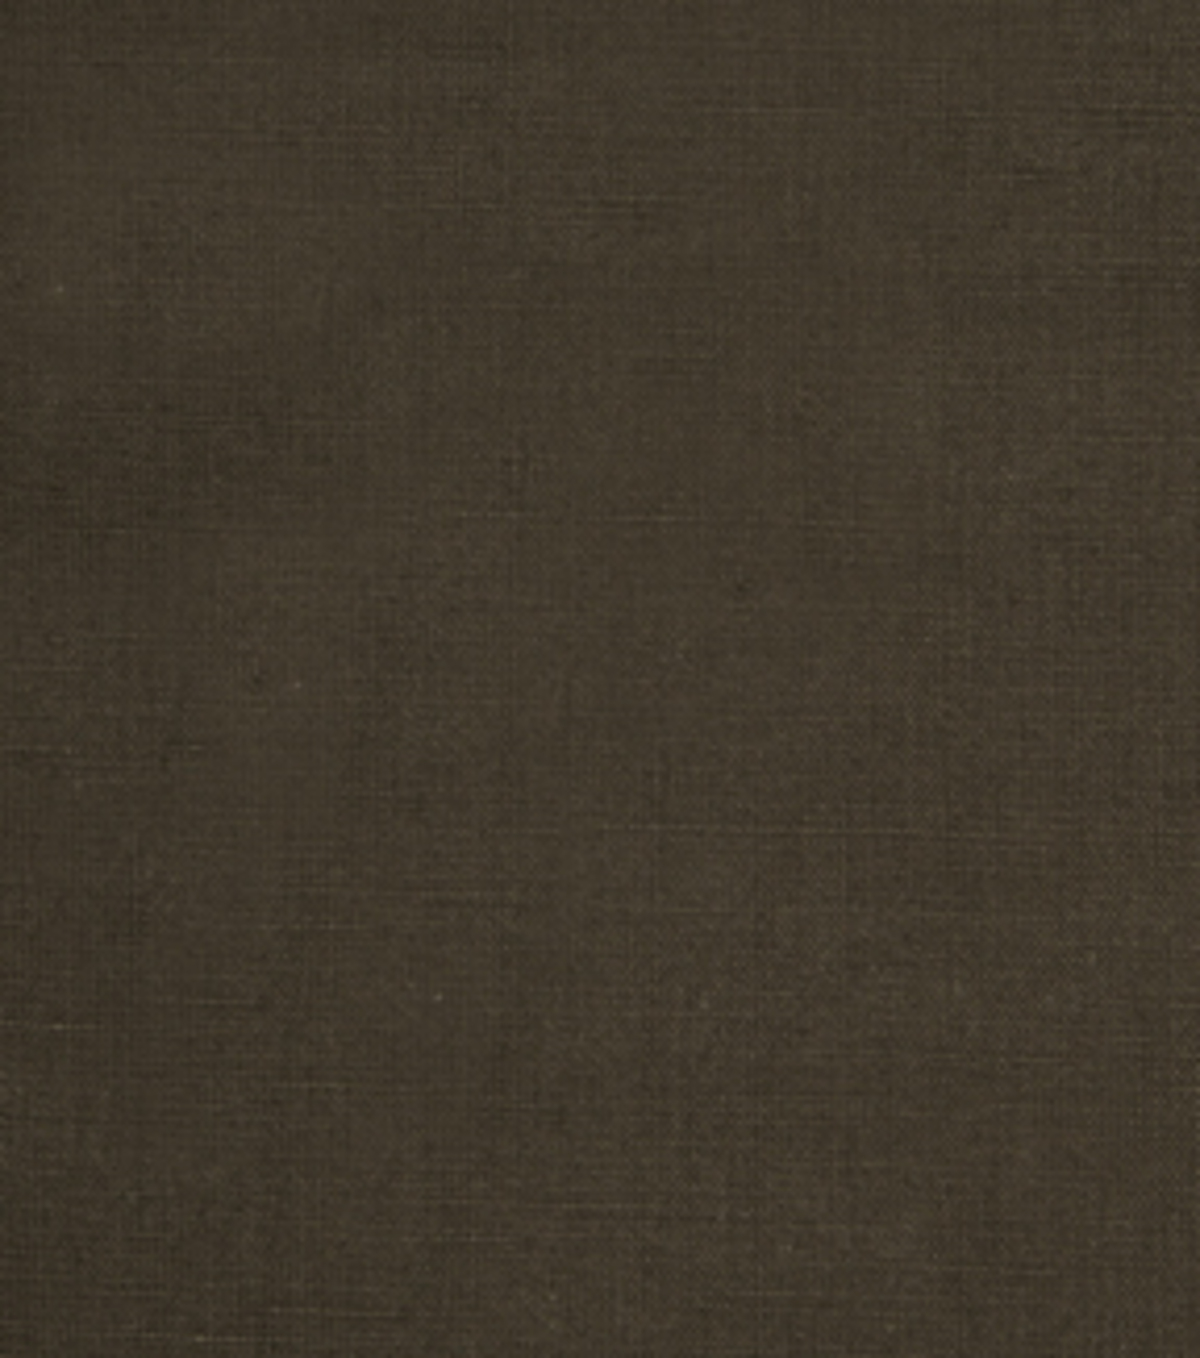 Home Decor 8\u0022x8\u0022 Fabric Swatch-Signature Series Sigourney Walnut